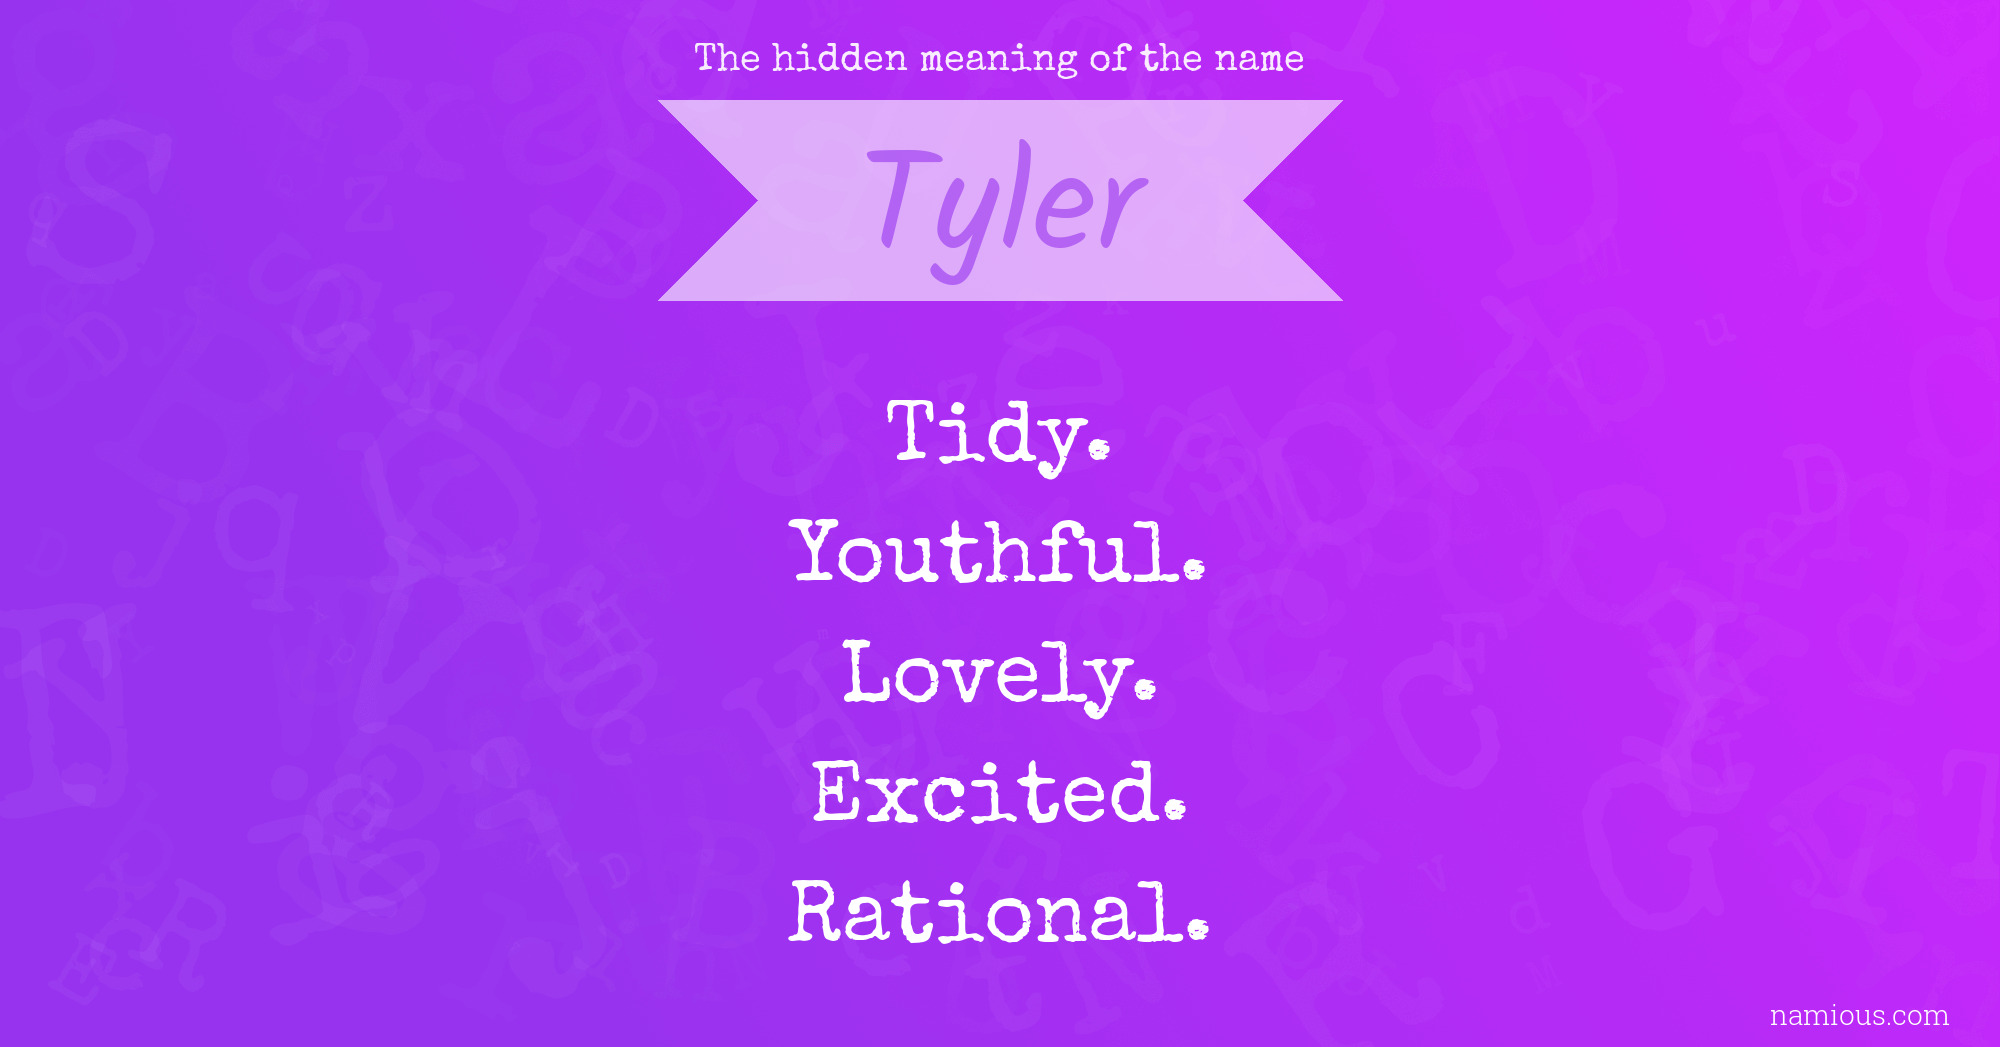 The hidden meaning of the name Tyler | Namious